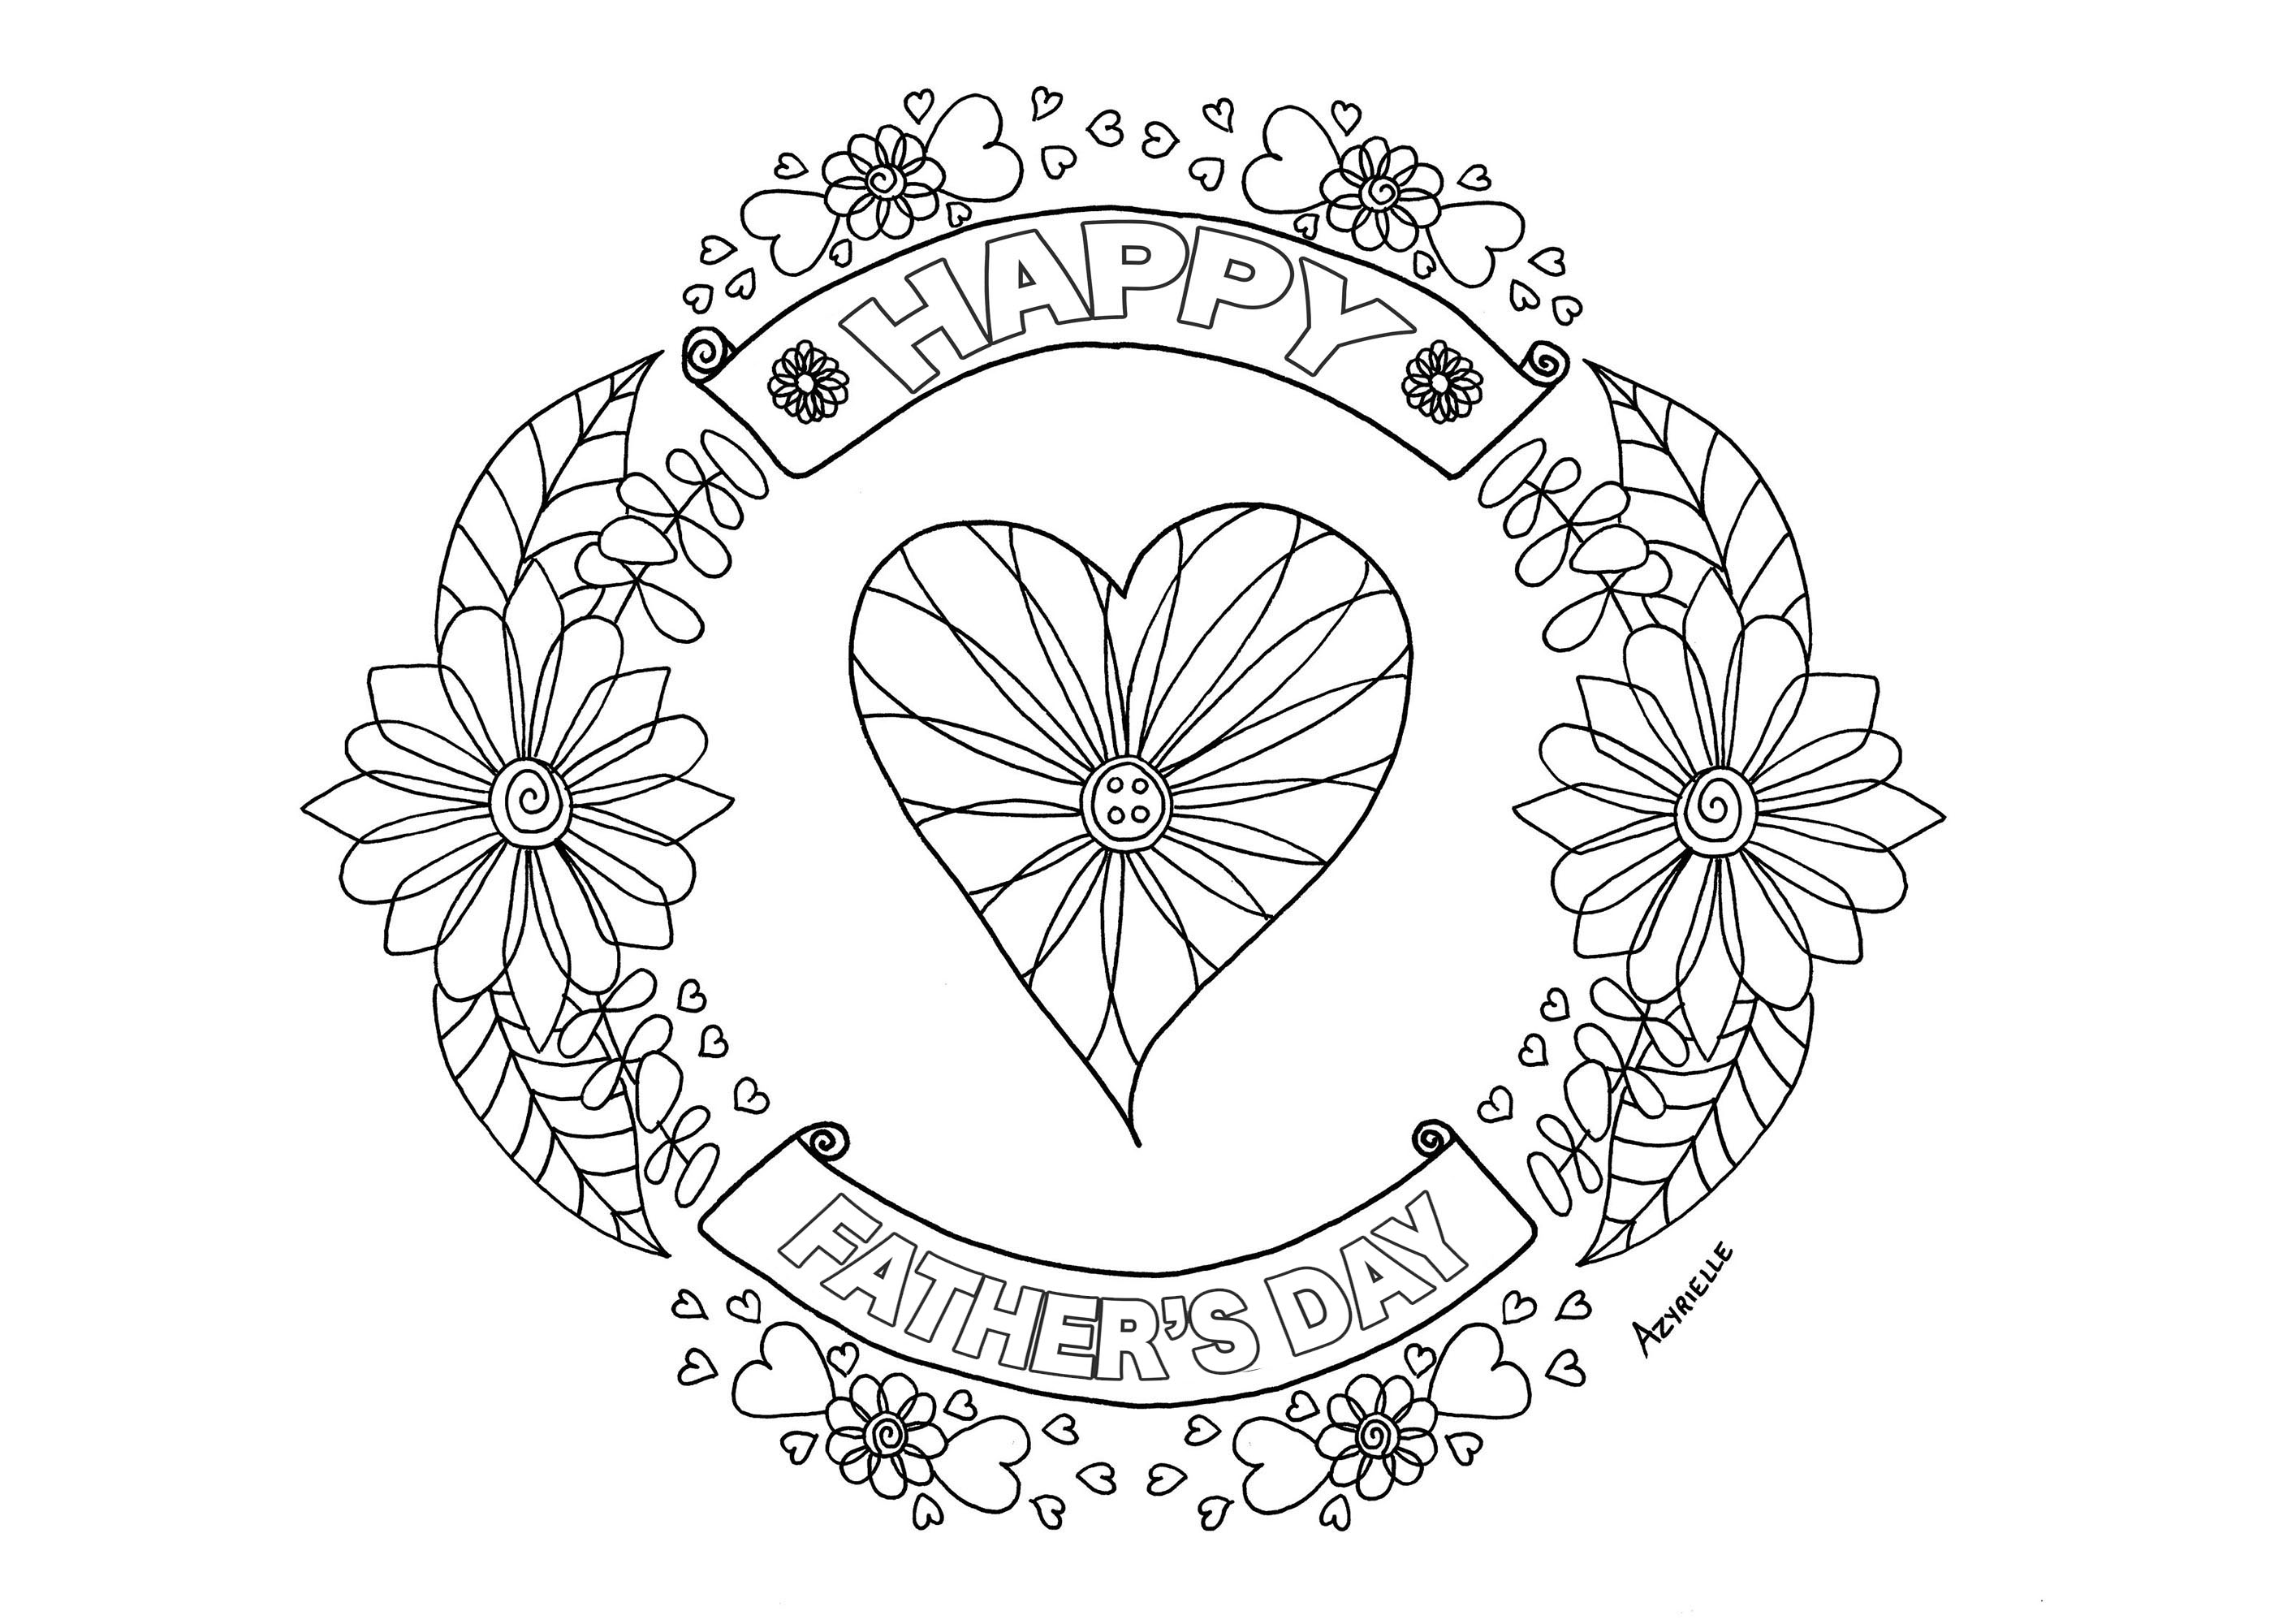 Happy Father's day coloring page : heart and flowered patterns